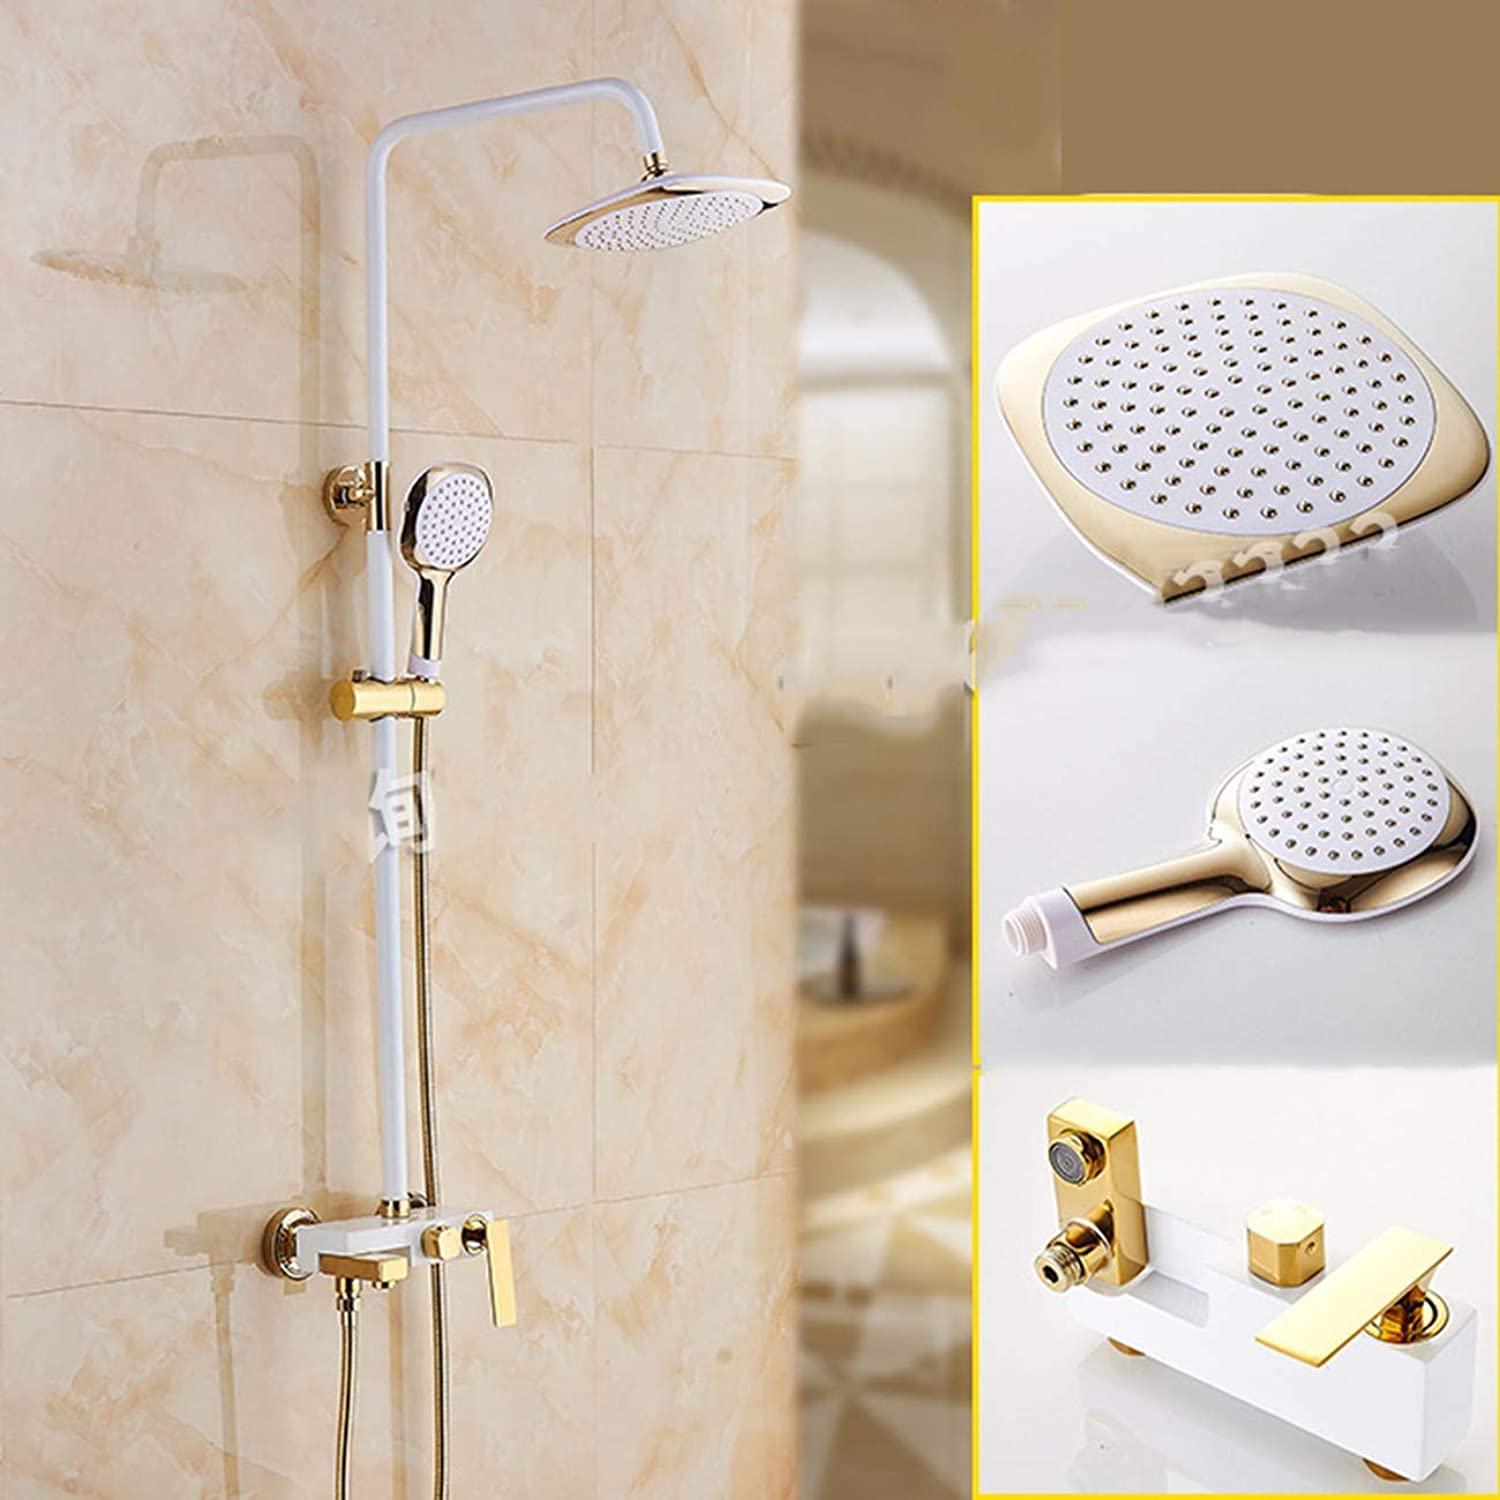 Shower set Shower Shower Shower Shower Set Full Copper Main Shower With Dark Mounted Water Saving Booster,B